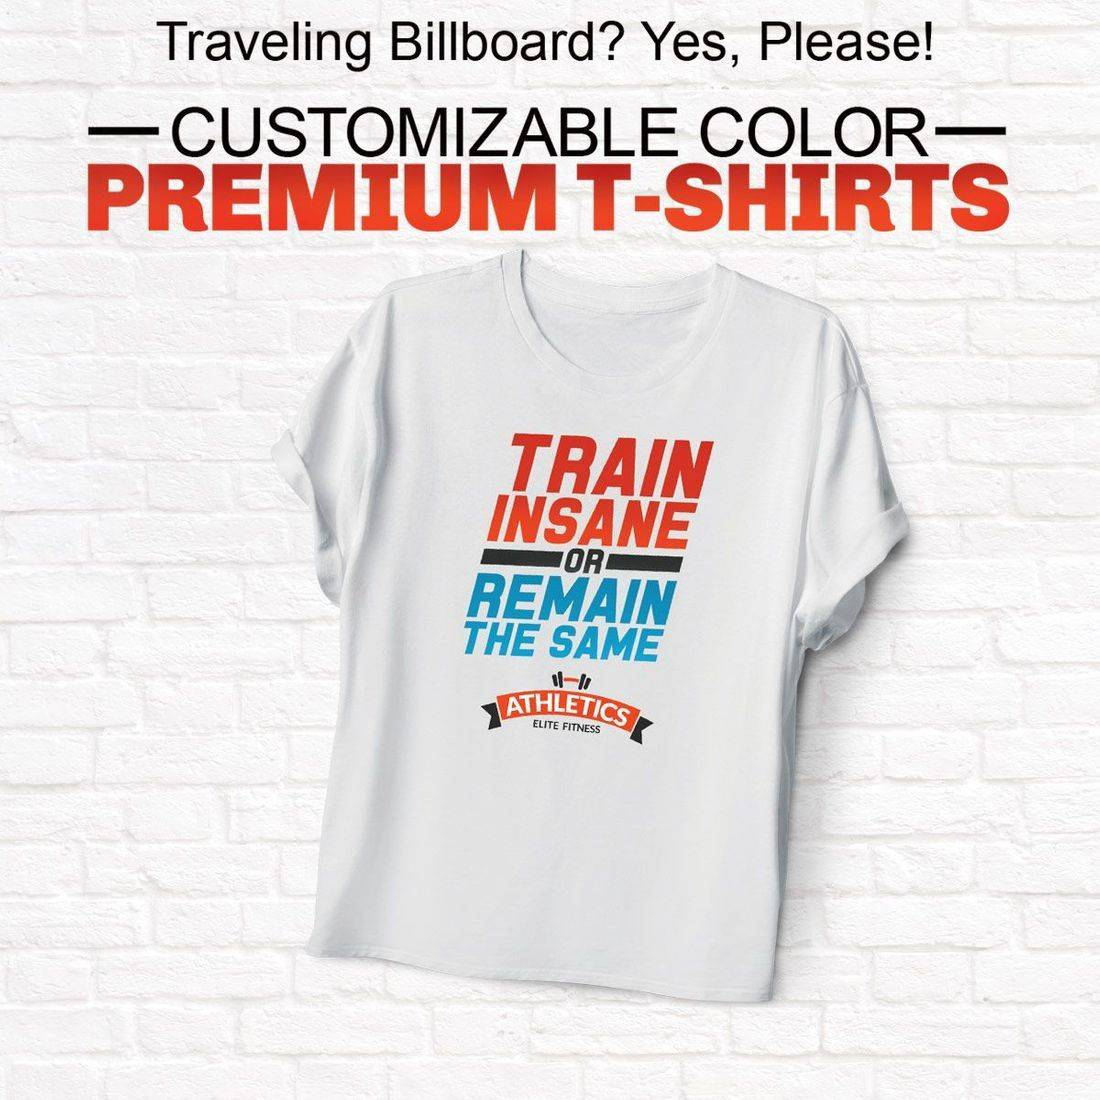 Custom, Printed, T-Shirt, Tee, Front, Back, White, Black, Color, Left Chest, Right Chest